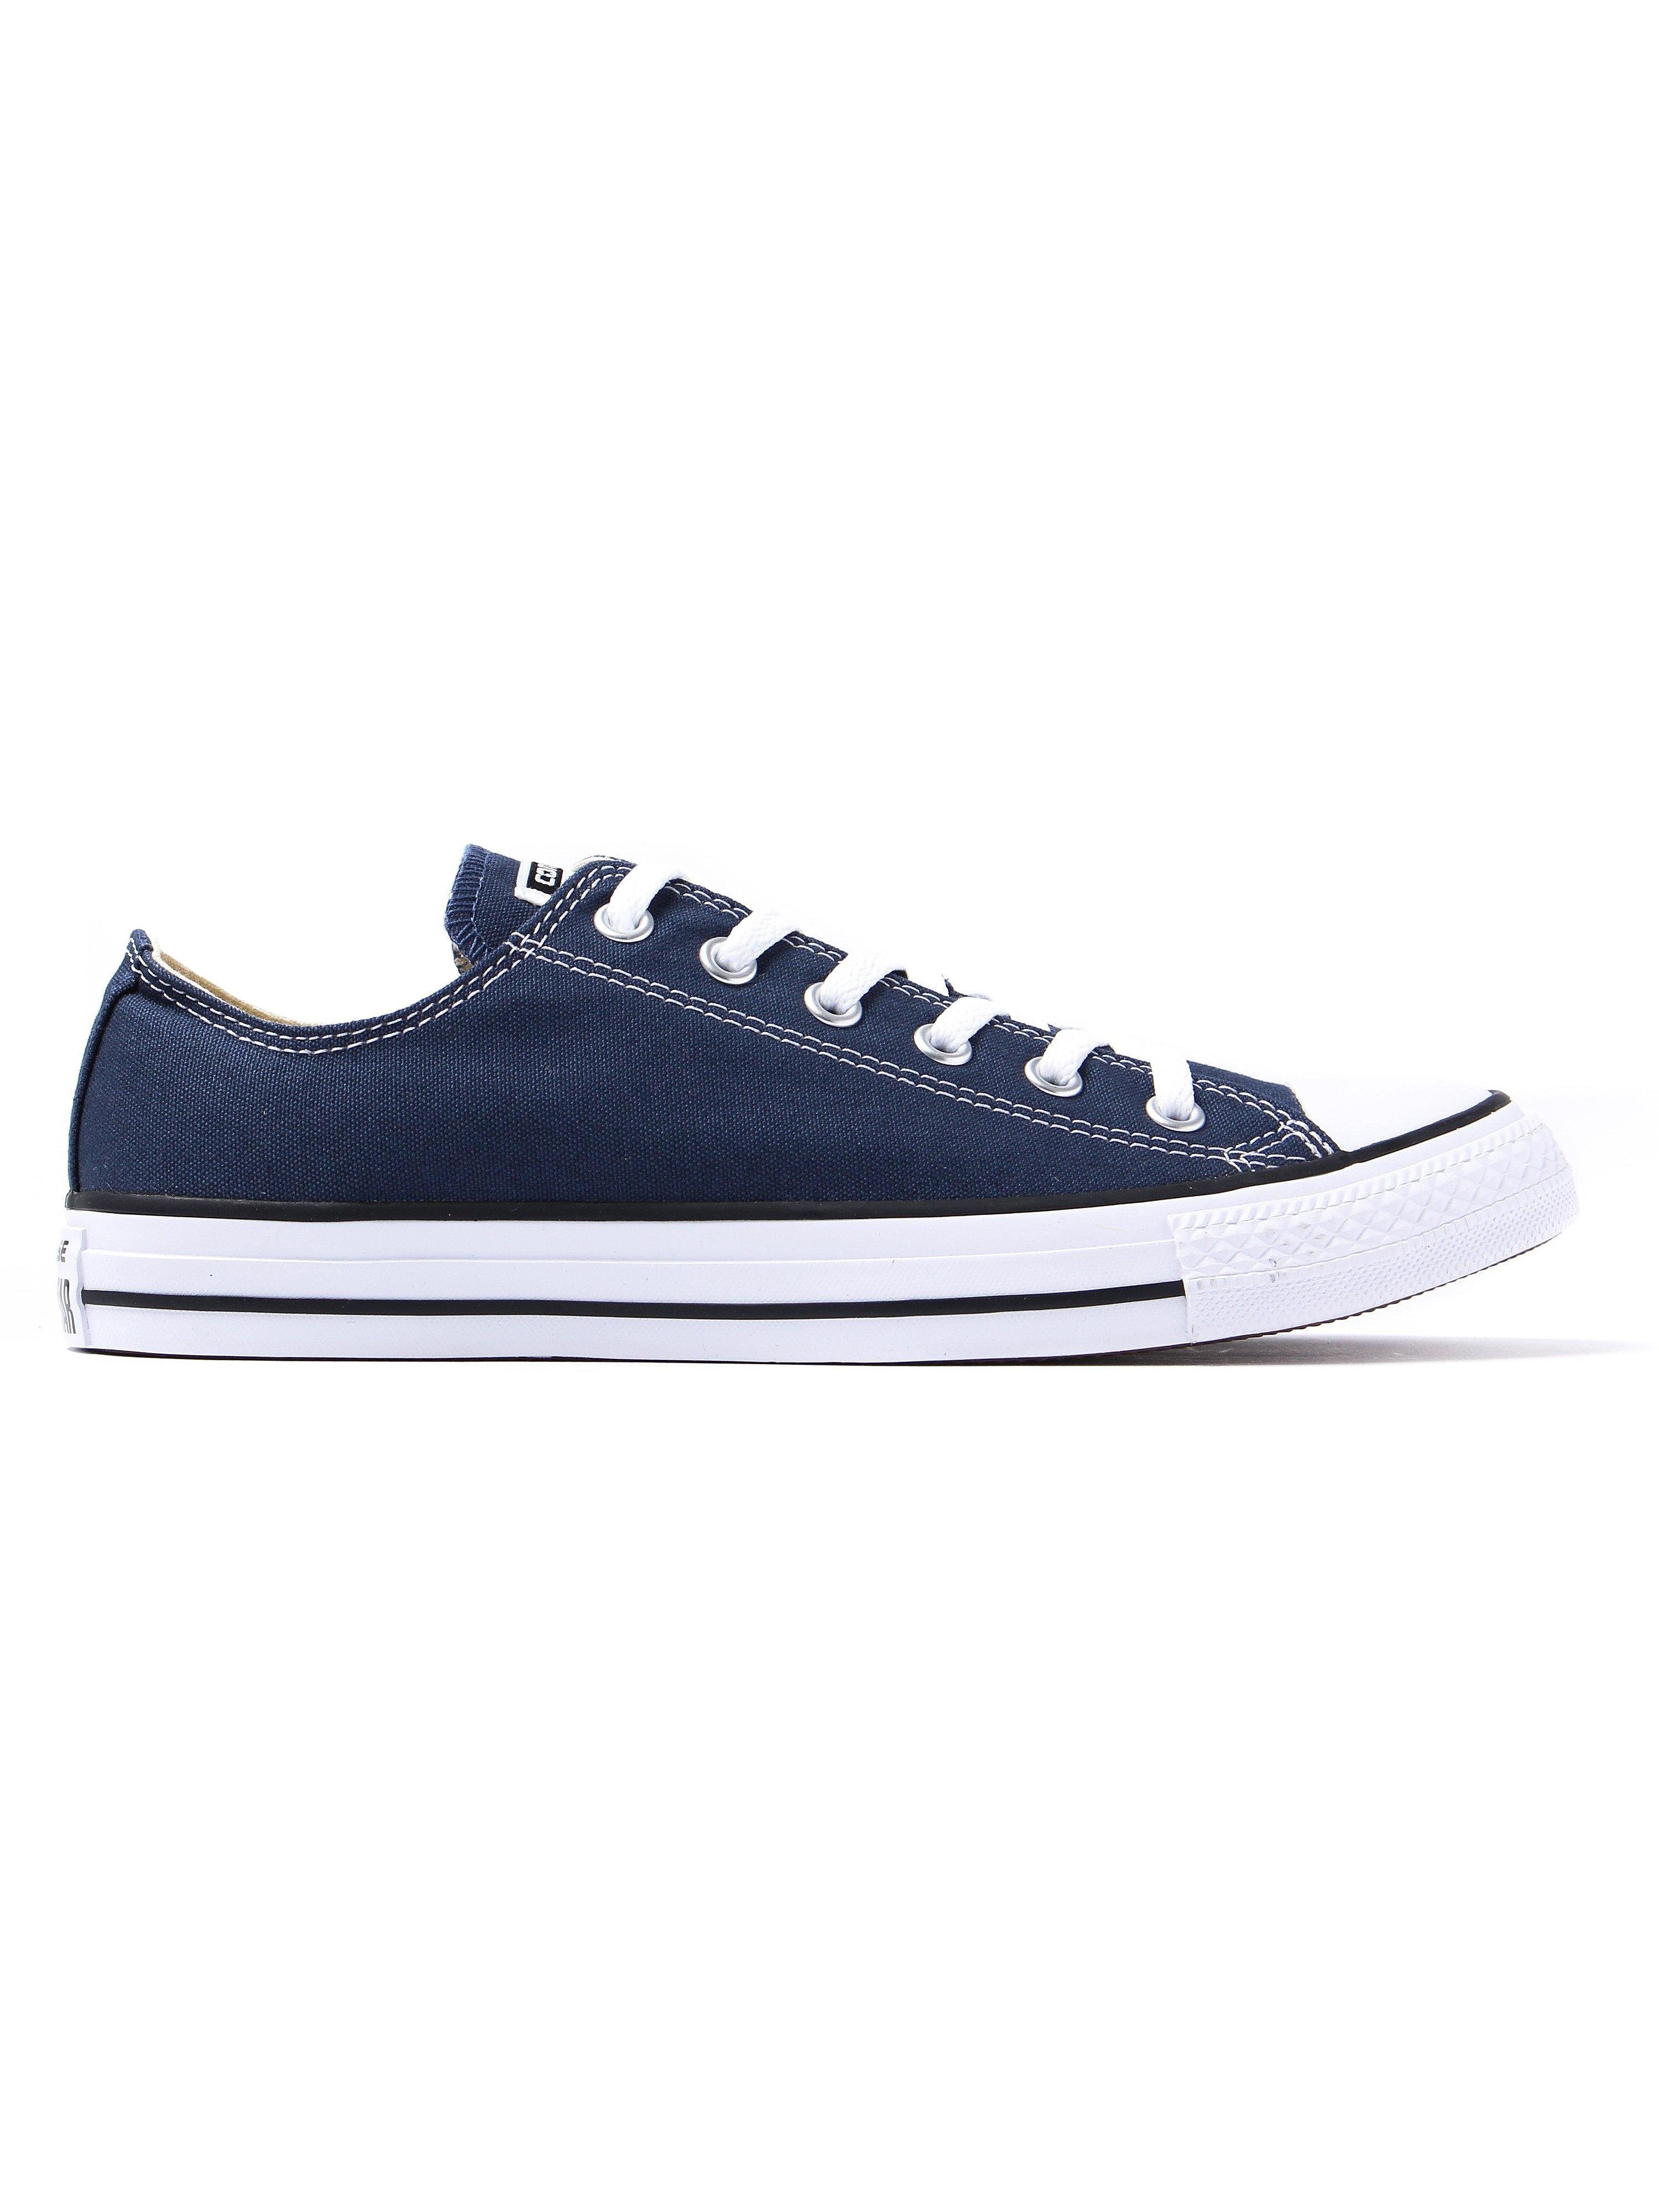 Converse Women's Chuck Taylor All Star OX Trainers - Navy